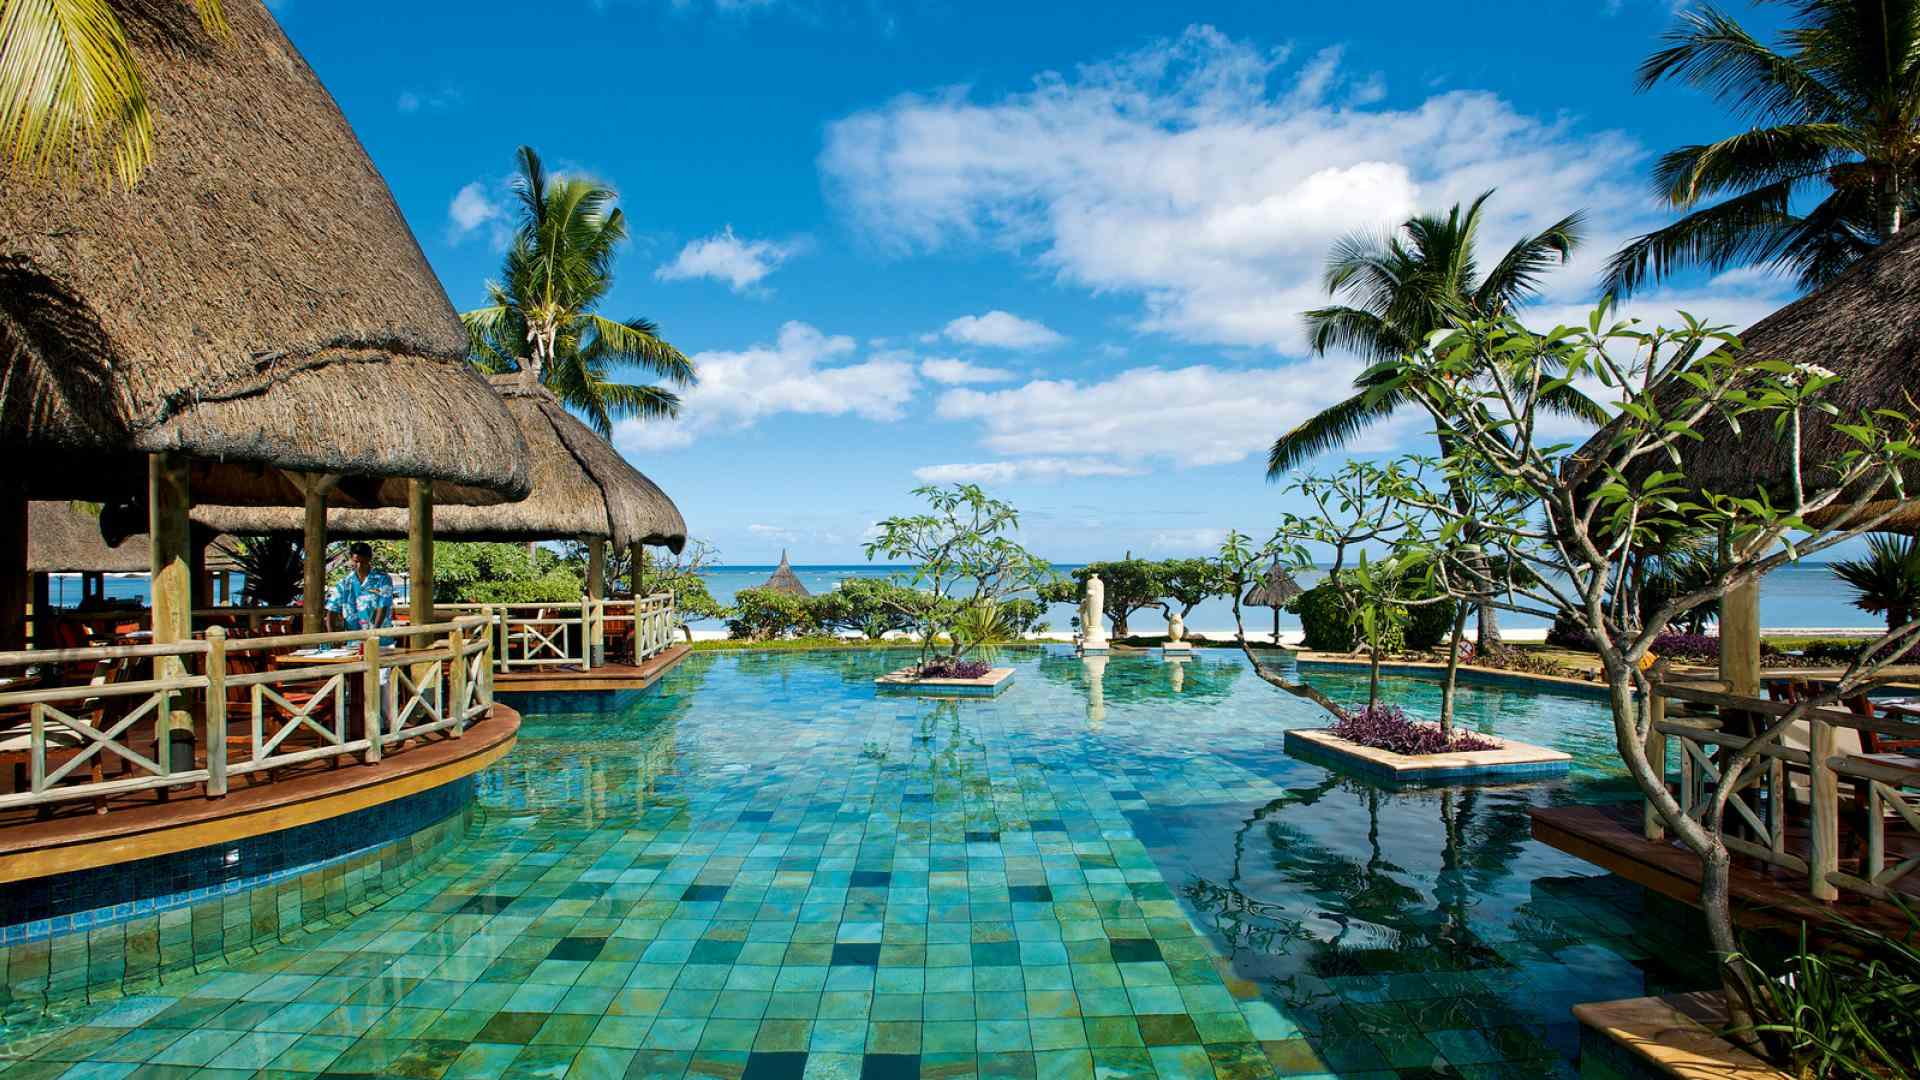 La Pirogue Hotel In Mauritius I A Sun Resort Official Website